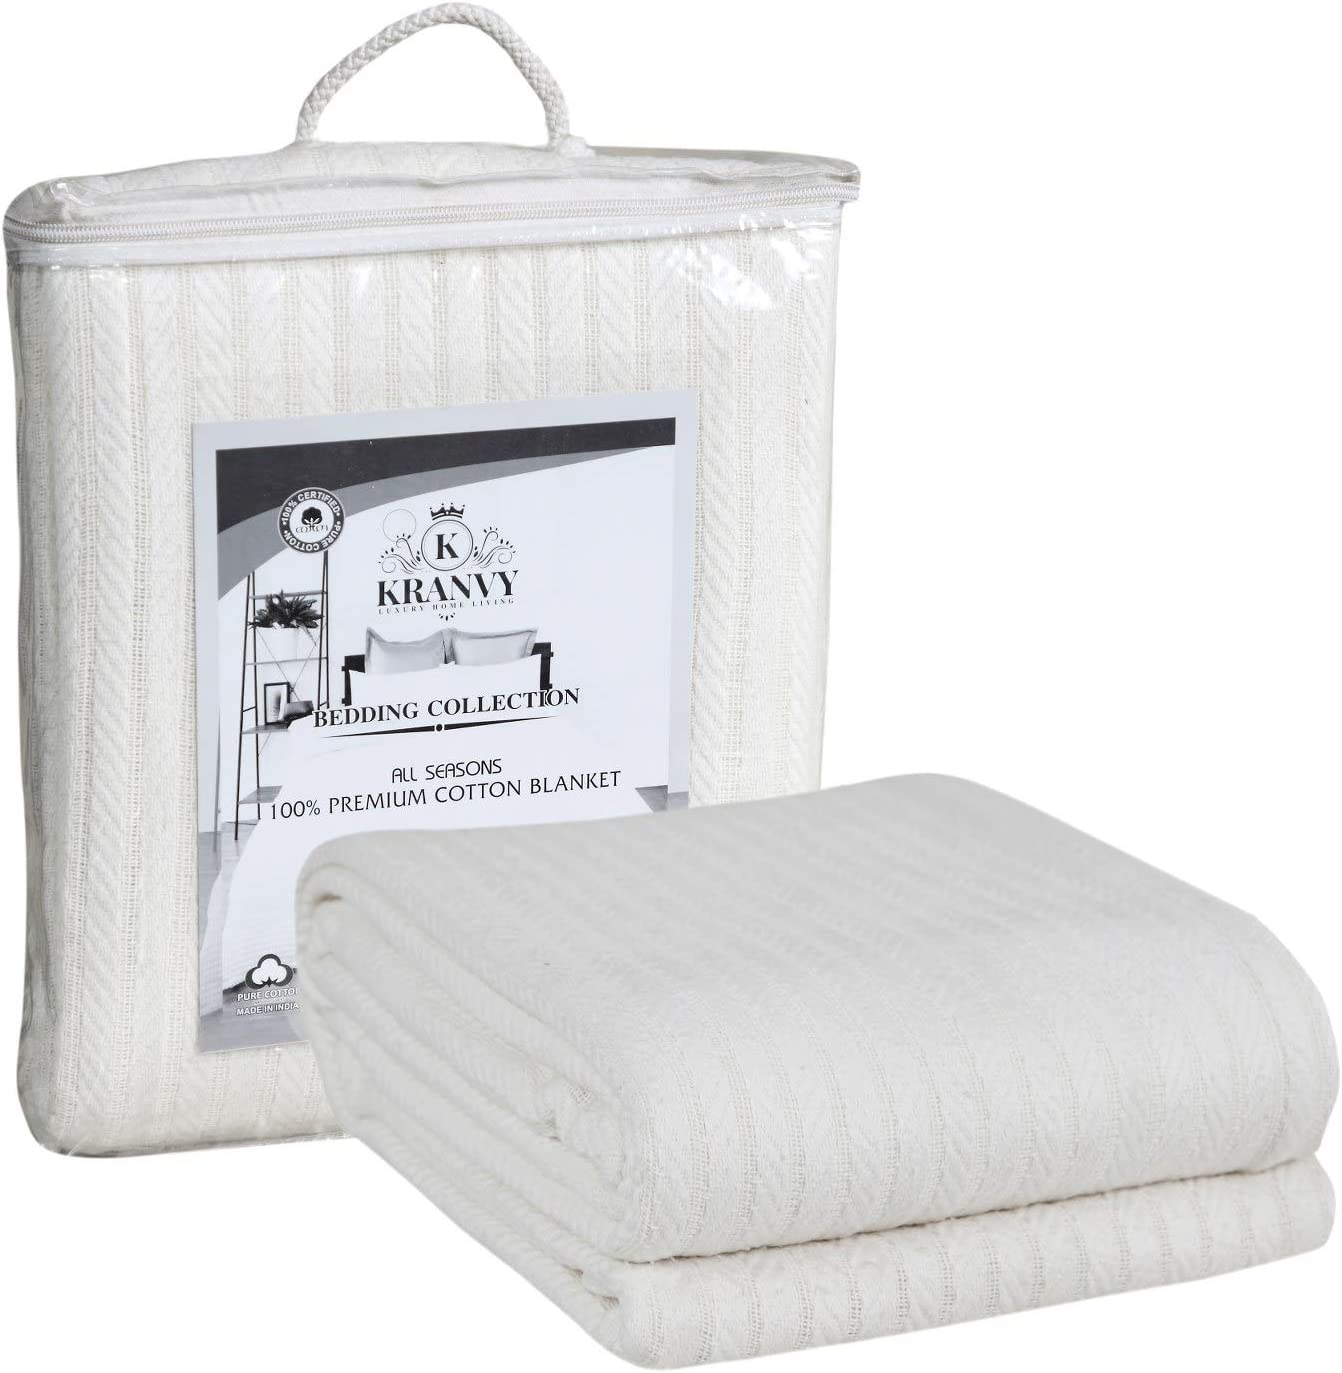 Kranvy Home 100% Soft Premium Cotton Thermal Blanket/Throw Lightweight and Breathable Loom Weave - Perfect for Layering Any Bed for All-Season - Ivory -Twin Size (66 x 90 Inch)